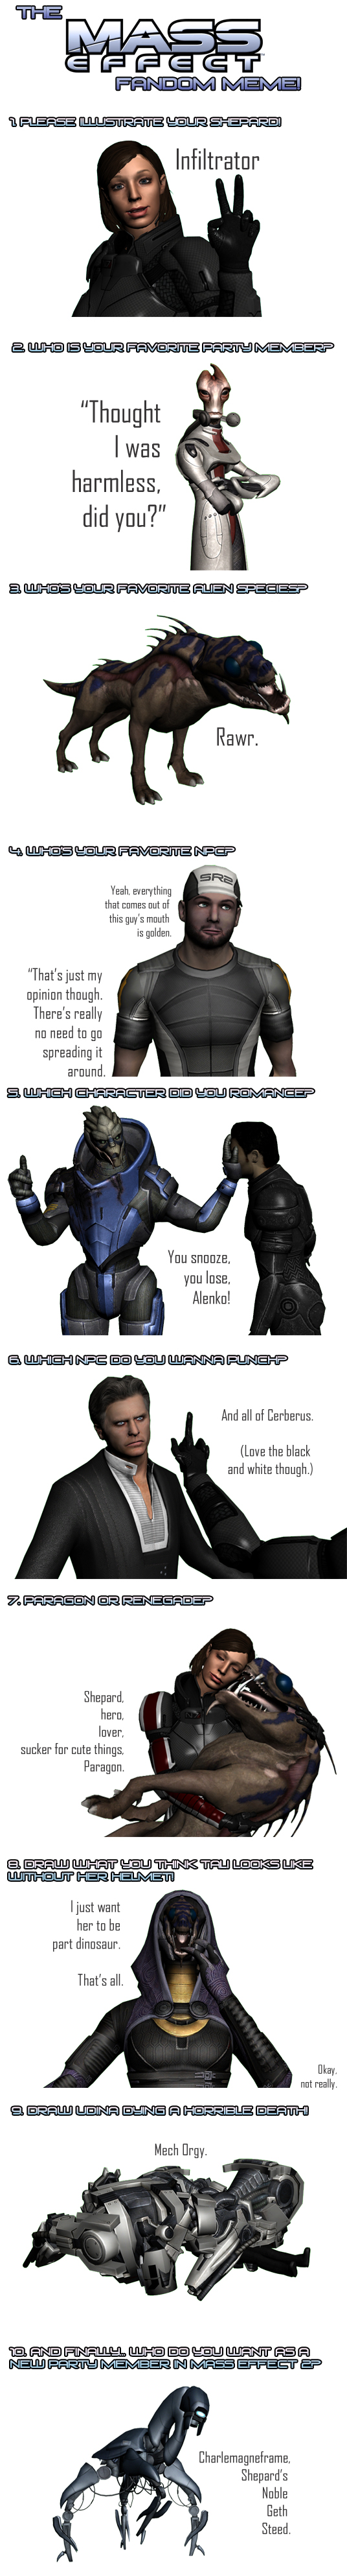 alicia__s_mass_effect_meme_by_lordess_alicia-d3h64r7.jpg